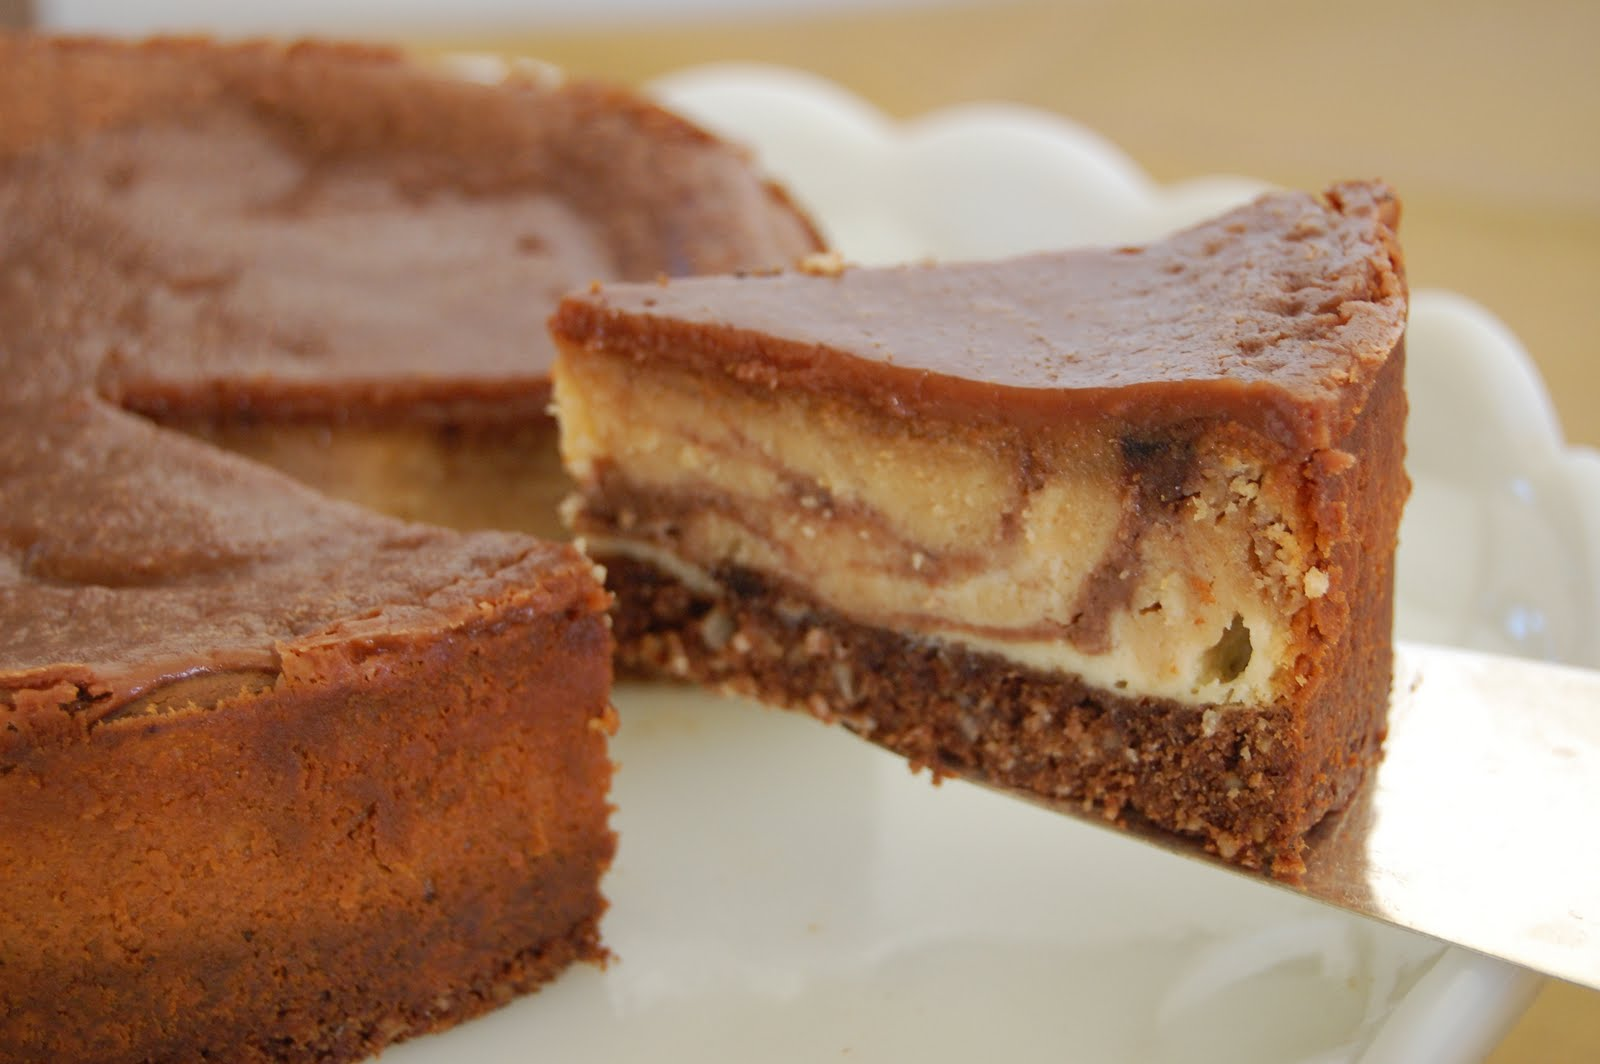 Chocolate-Peanut Butter Cheesecake With Chocolate Glaze Recipes ...